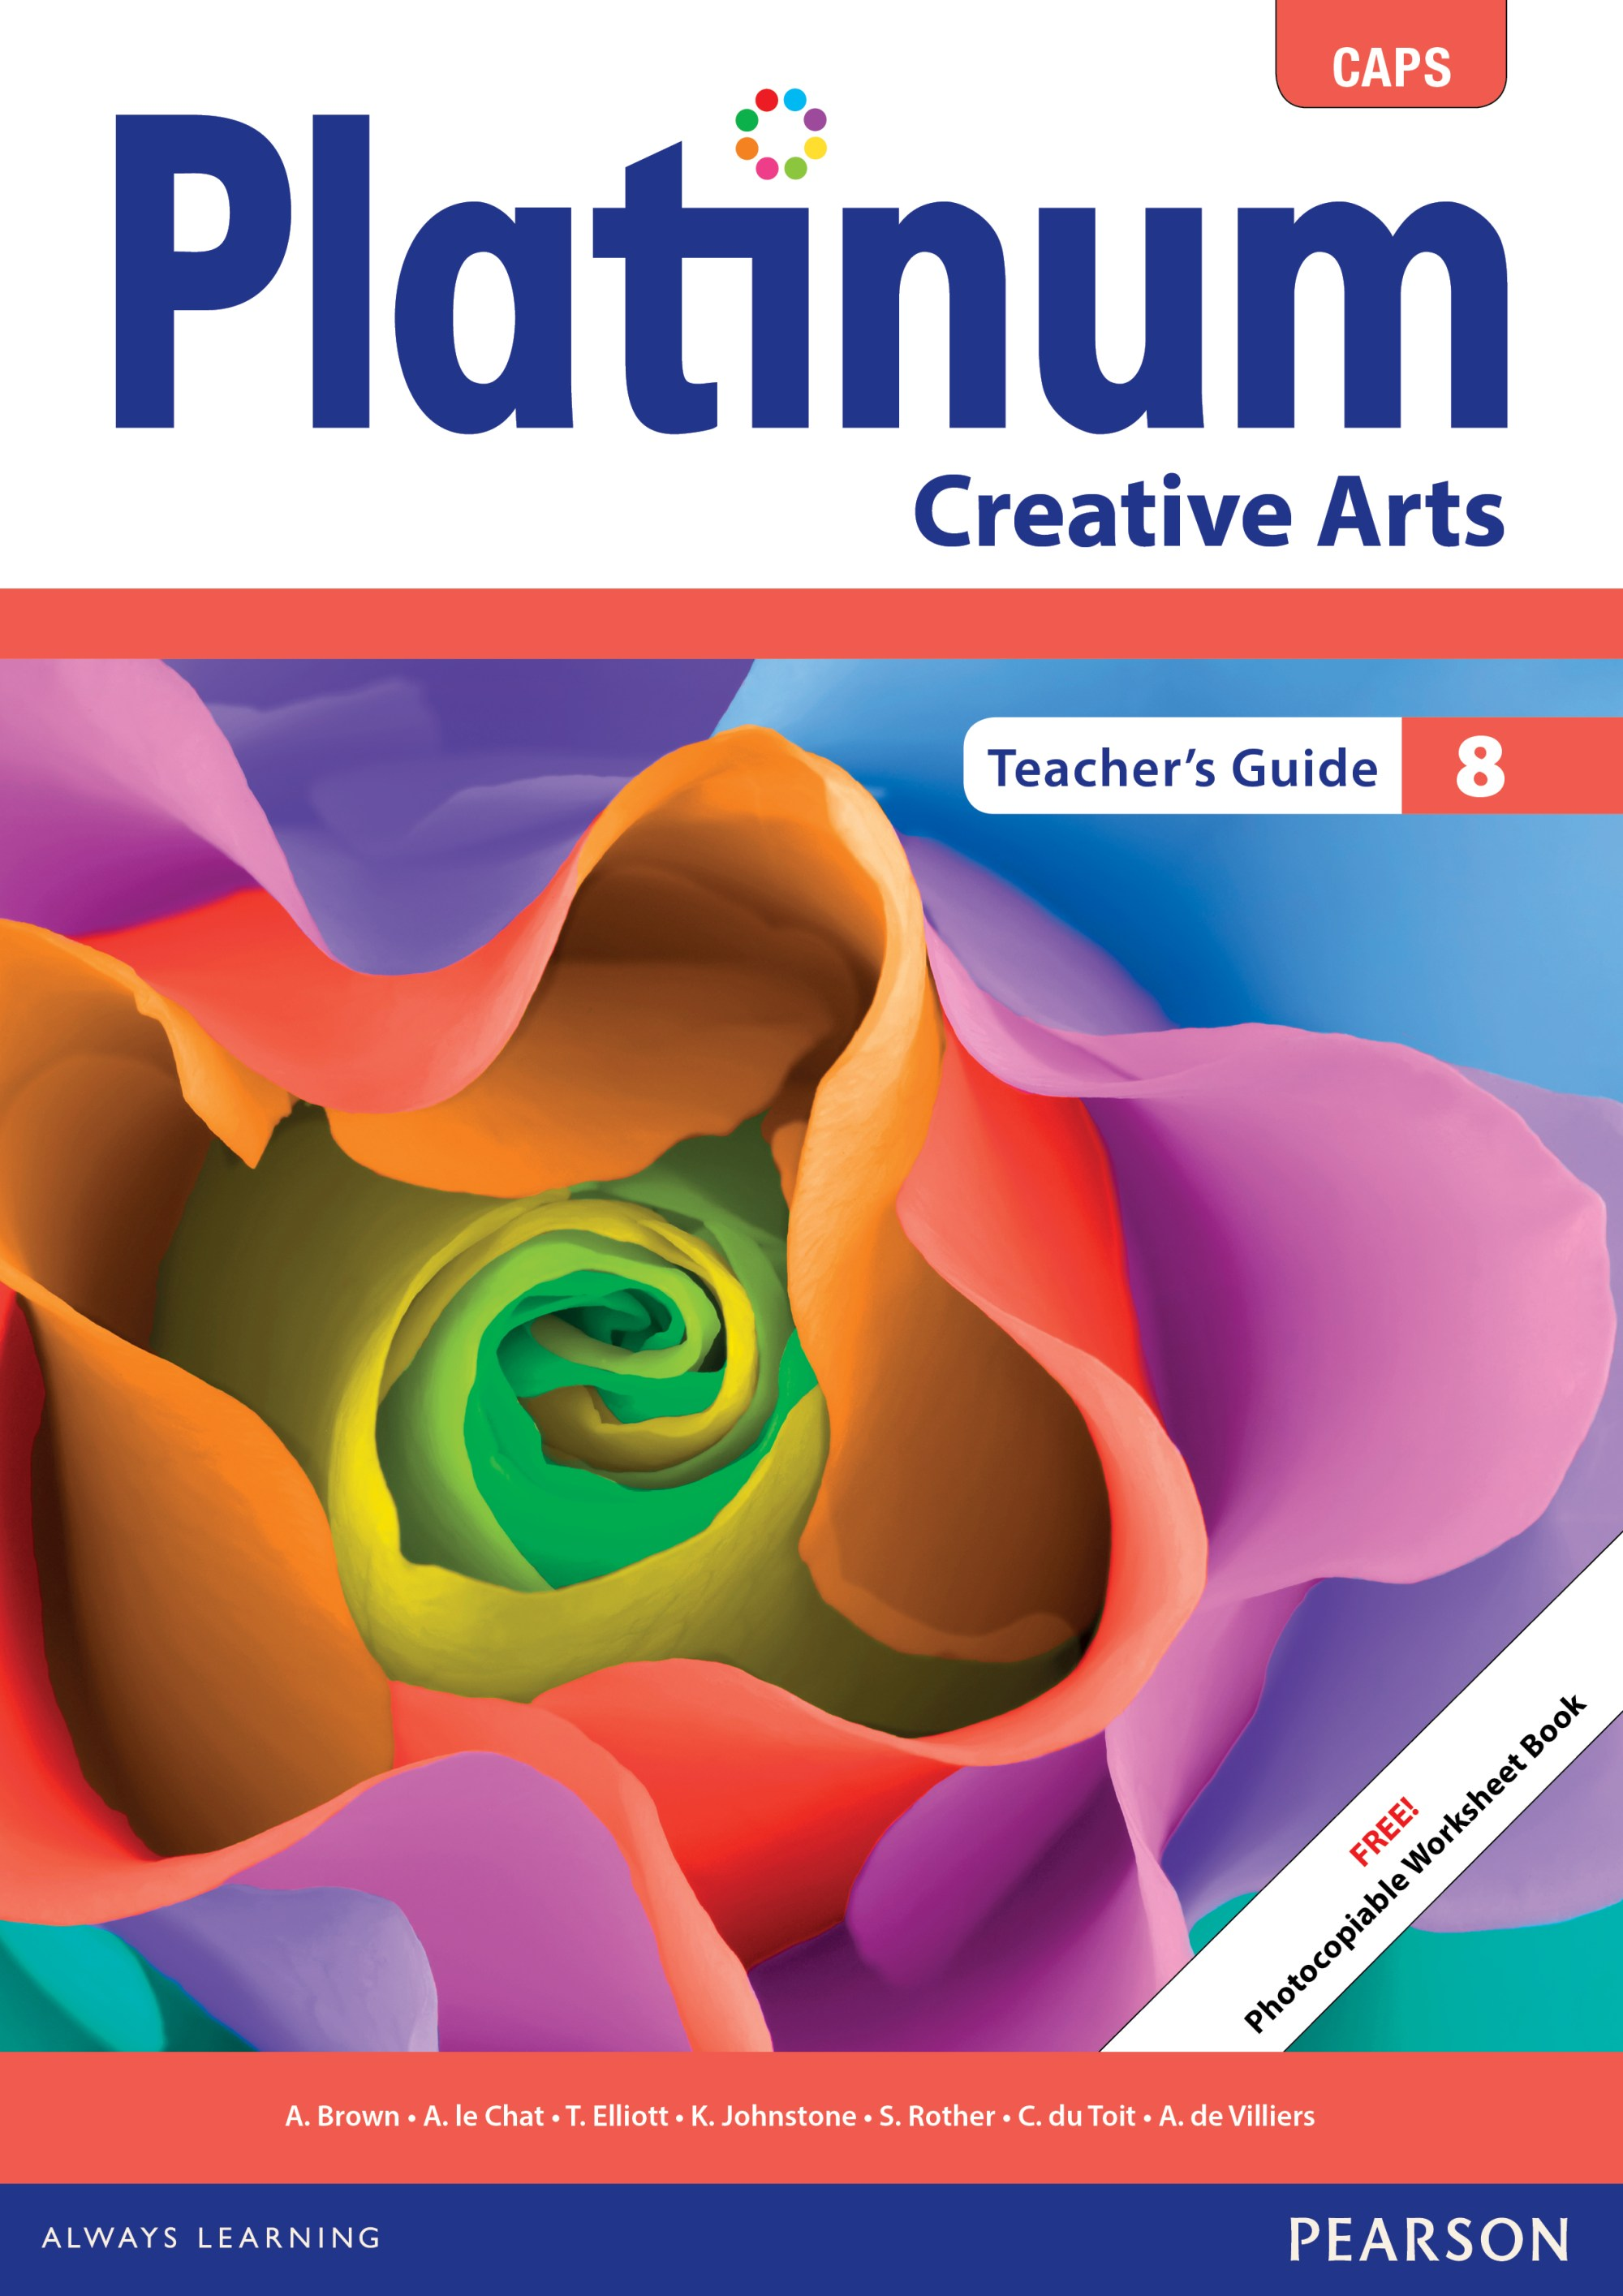 hight resolution of Platinum Creative Arts Grade 8 Teacher's Guide ePDF (perpetual licence)    WCED ePortal